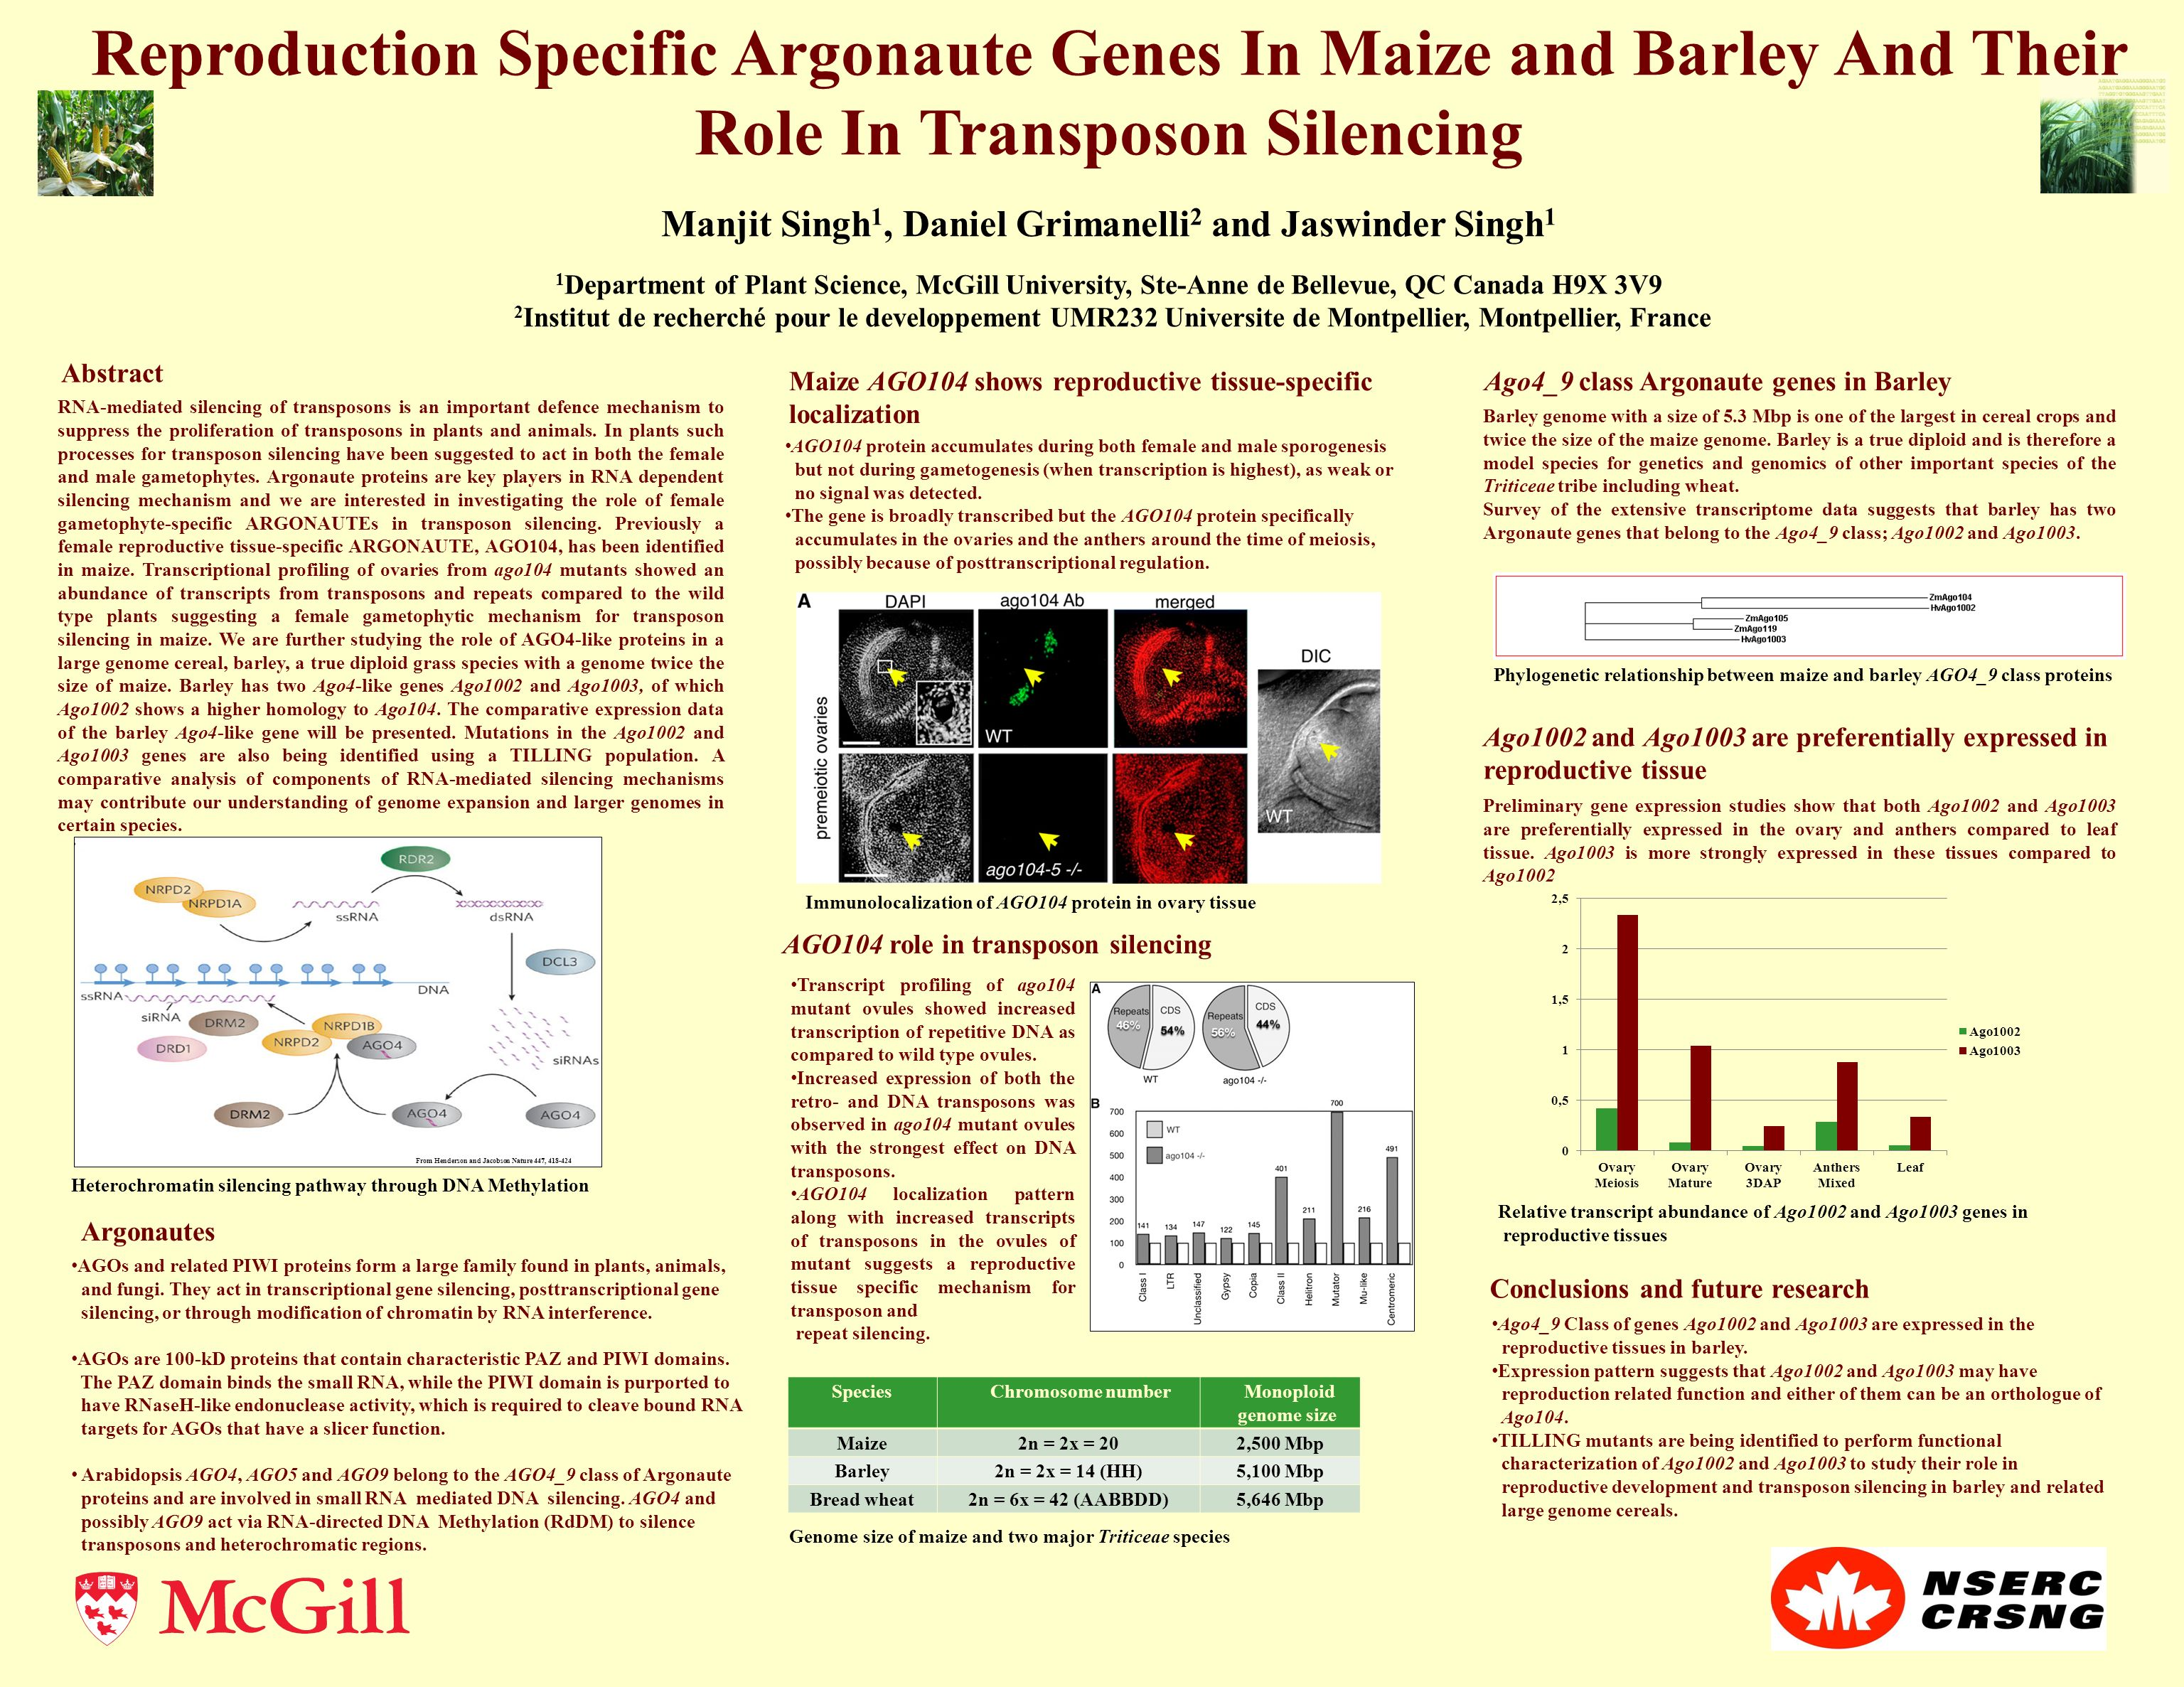 Reproduction Specific Argonaute Genes In Maize and Barley And Their Role In Transposon Silencing Manjit Singh 1, Daniel Grimanelli 2 and Jaswinder Singh 1 1 Department of Plant Science, McGill University, Ste-Anne de Bellevue, QC Canada H9X 3V9 2 Institut de recherché pour le developpement UMR232 Universite de Montpellier, Montpellier, France From Henderson and Jacobson Nature 447, 418-424 Species Chromosome number Monoploid genome size Maize2n = 2x = 202,500 Mbp Barley2n = 2x = 14 (HH)5,100 Mbp Bread wheat2n = 6x = 42 (AABBDD)5,646 Mbp AGO104 role in transposon silencing Transcript profiling of ago104 mutant ovules showed increased transcription of repetitive DNA as compared to wild type ovules.